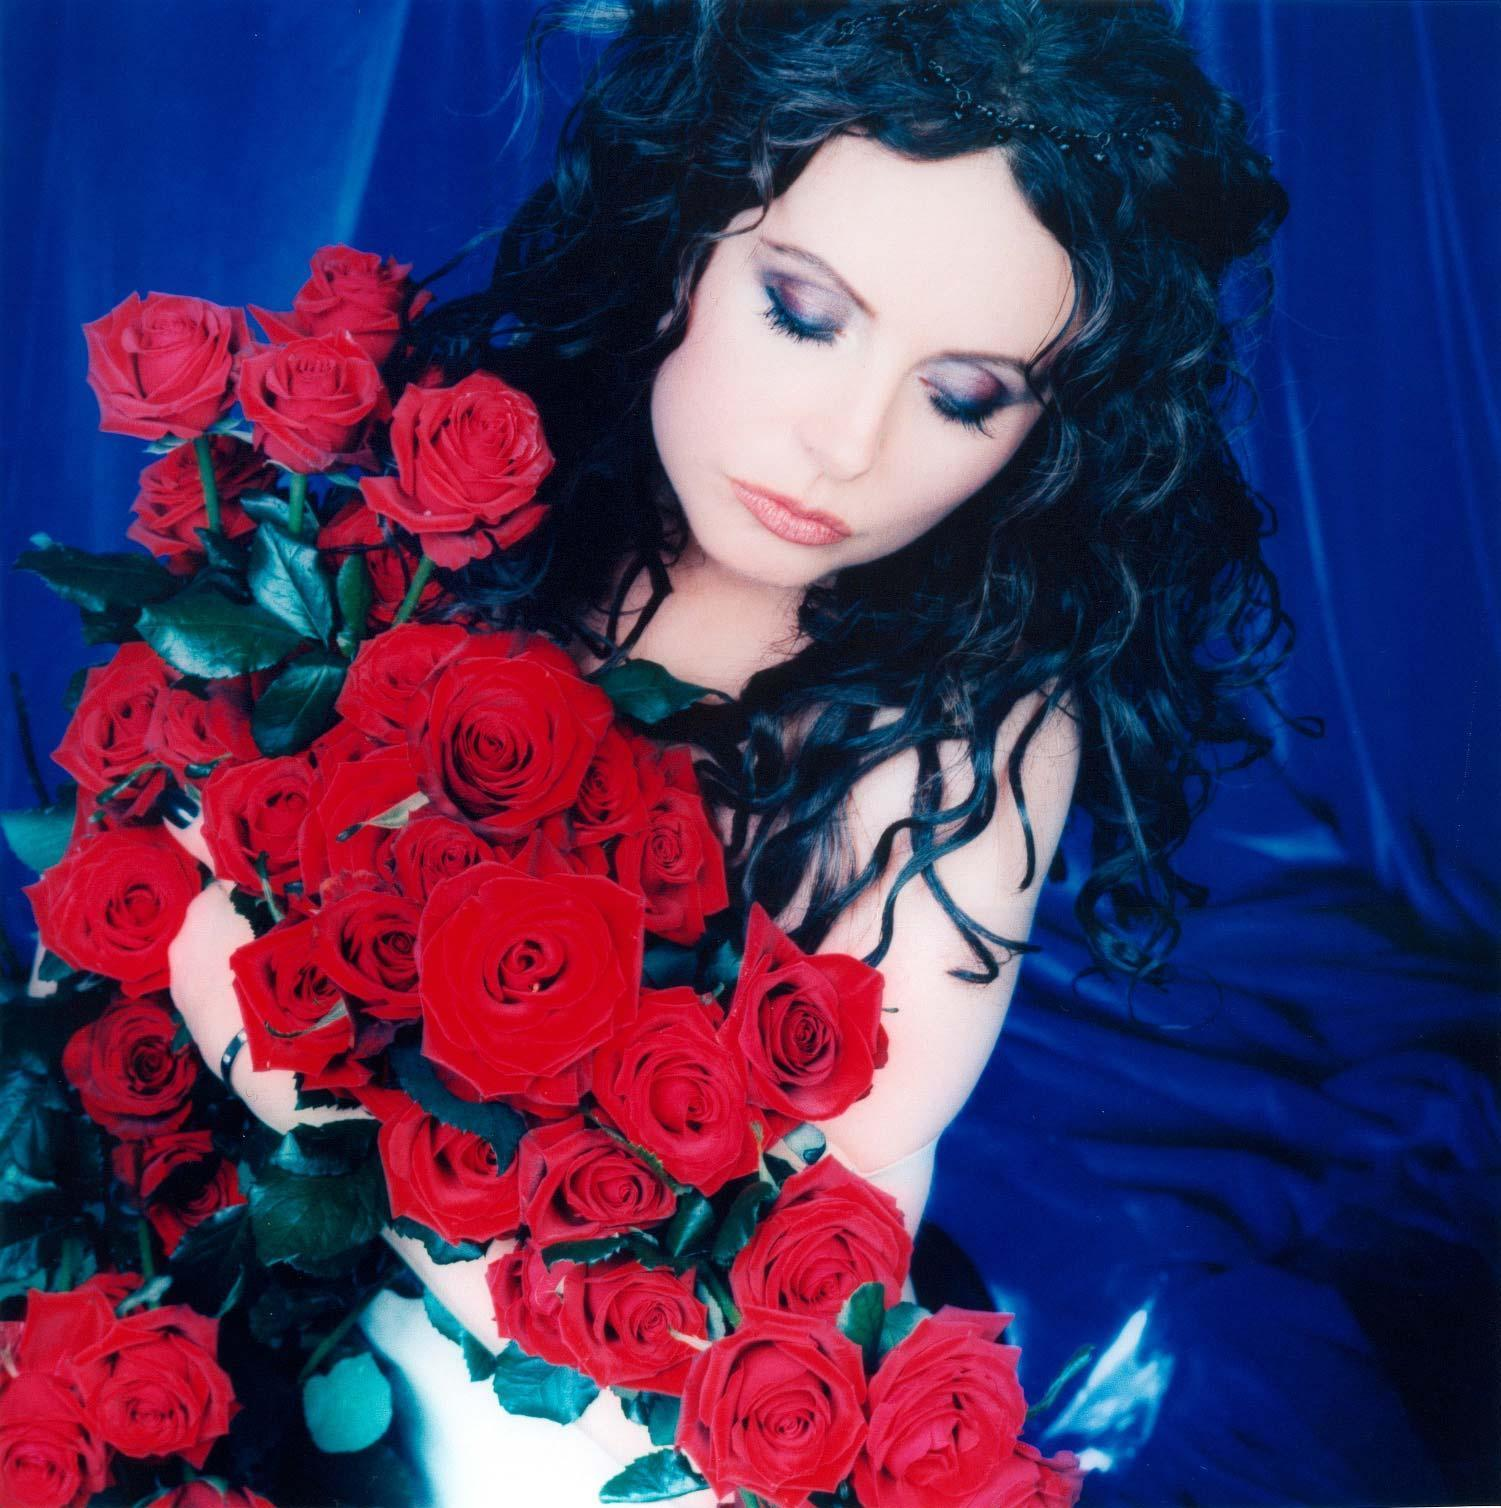 sarah brightman dust in the windsarah brightman time to say goodbye, sarah brightman harem, sarah brightman this love, sarah brightman слушать, sarah brightman anytime anywhere, sarah brightman eden, sarah brightman fleurs du mal, sarah brightman песни, sarah brightman mp3, sarah brightman скачать, sarah brightman адажио, sarah brightman harem mp3, sarah brightman scarborough fair, sarah brightman призрак оперы, sarah brightman so many things, sarah brightman scene d'amour, sarah brightman deliver me, sarah brightman dust in the wind, sarah brightman moment of peace, sarah brightman it's a beautiful day